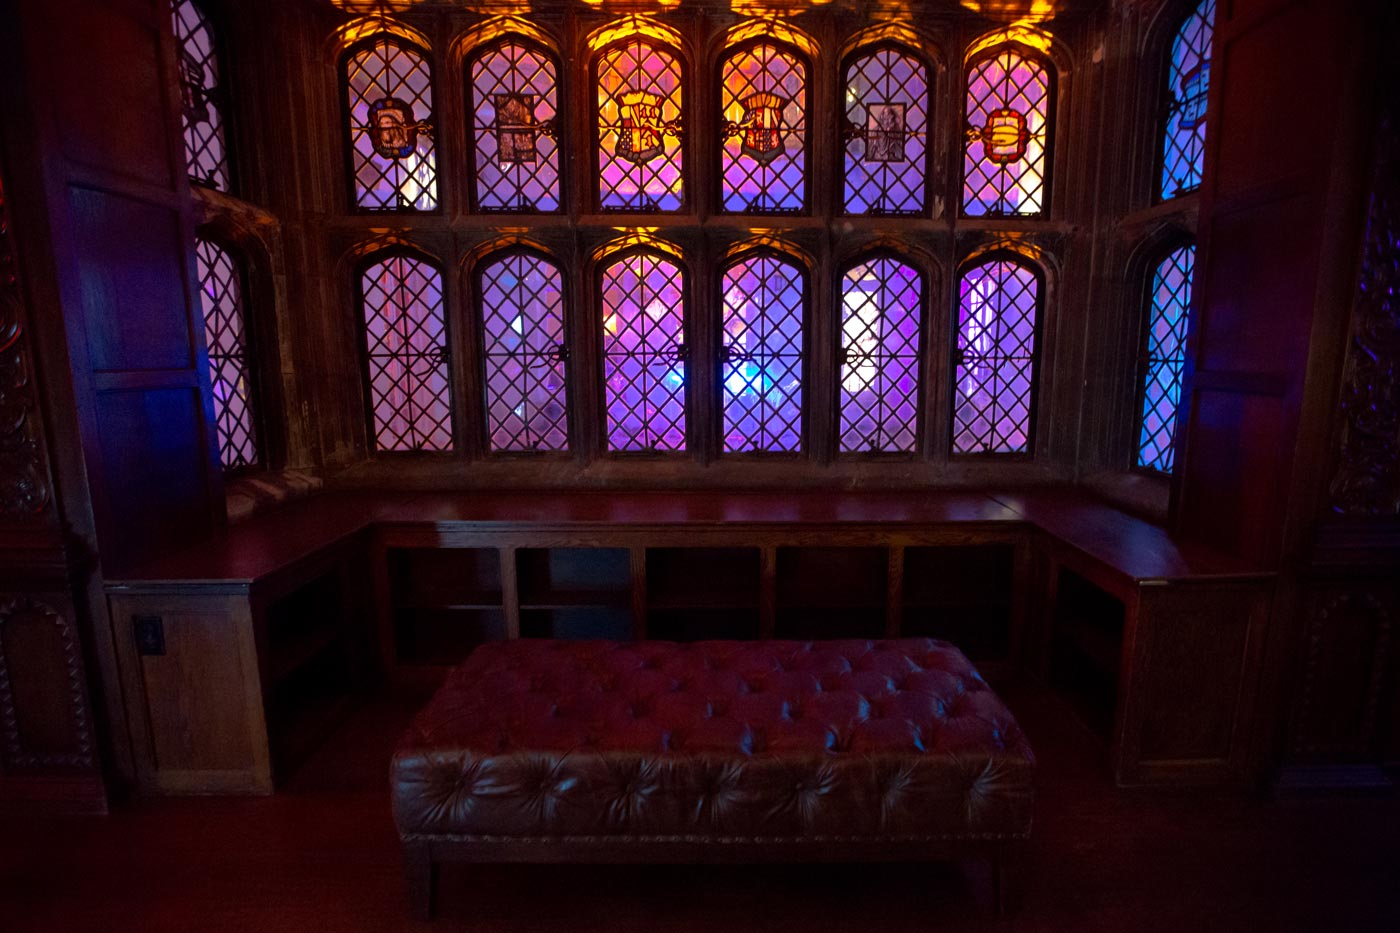 Stain glass effect on windows due to interior courtyard lighting